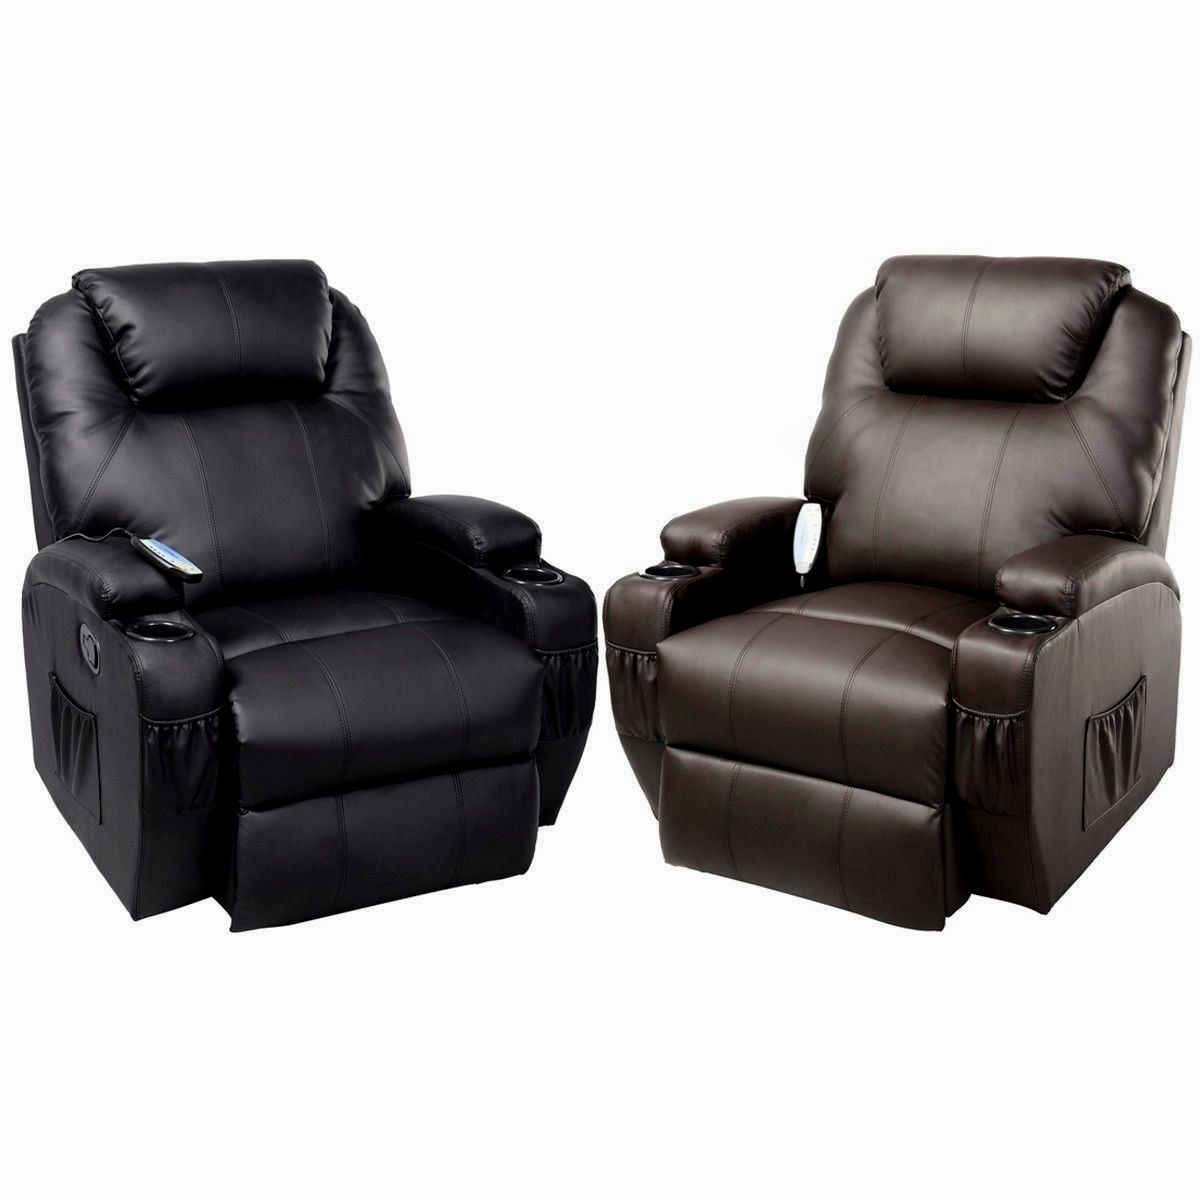 lovely leather power reclining sofa inspiration-Beautiful Leather Power Reclining sofa Layout